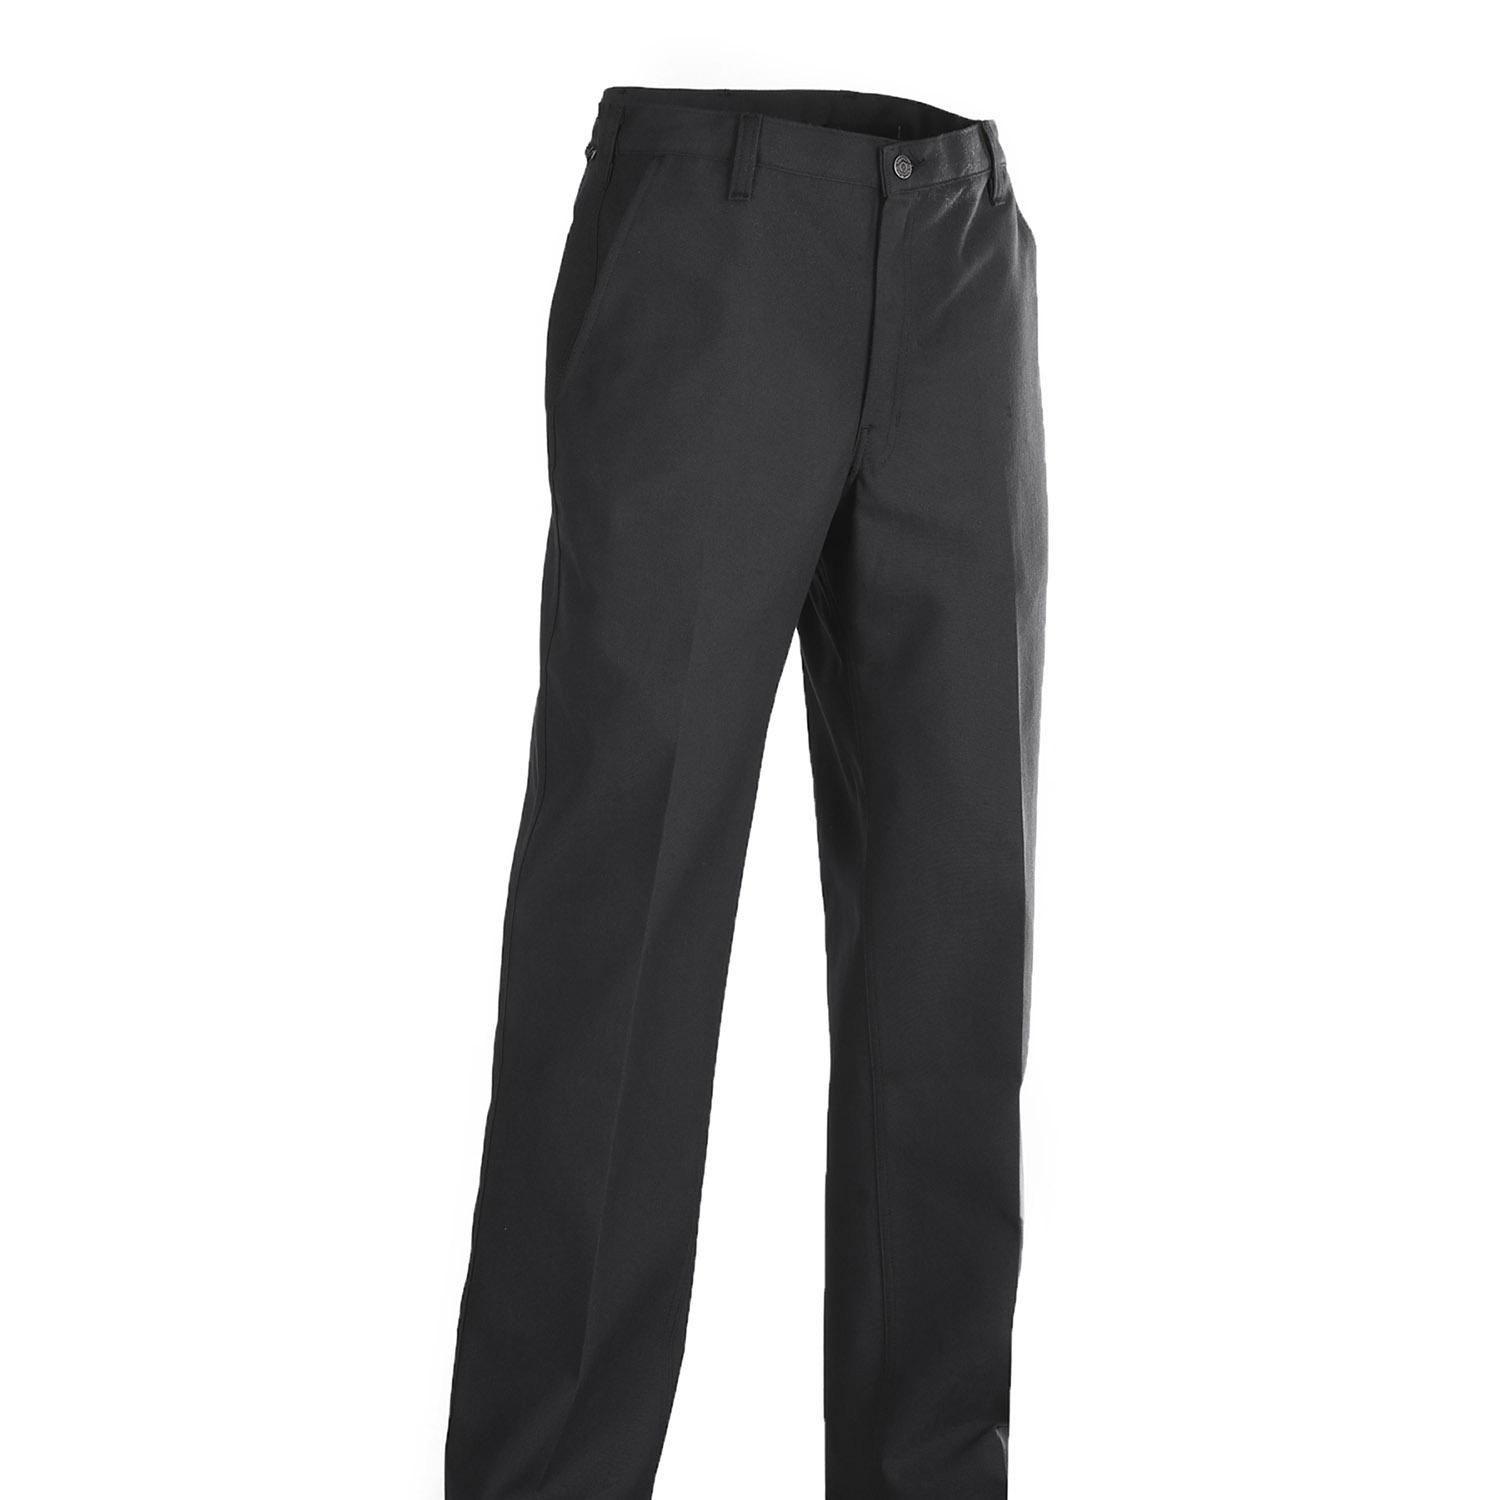 Workrite Nomex IIIA Industrial Pants